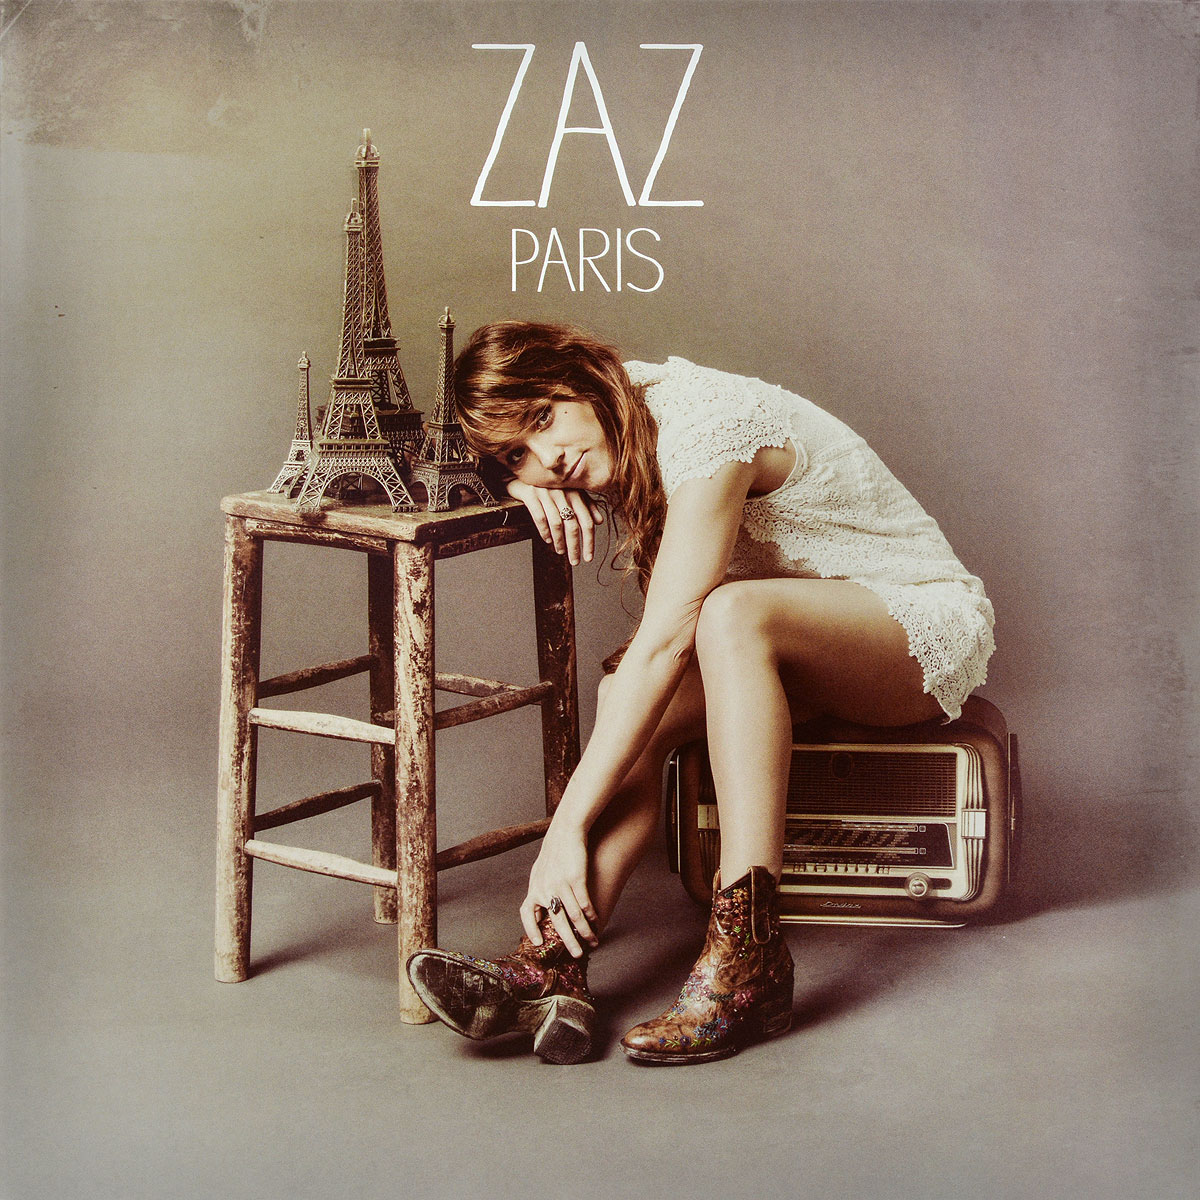 Zaz Zaz. Paris (2 LP)